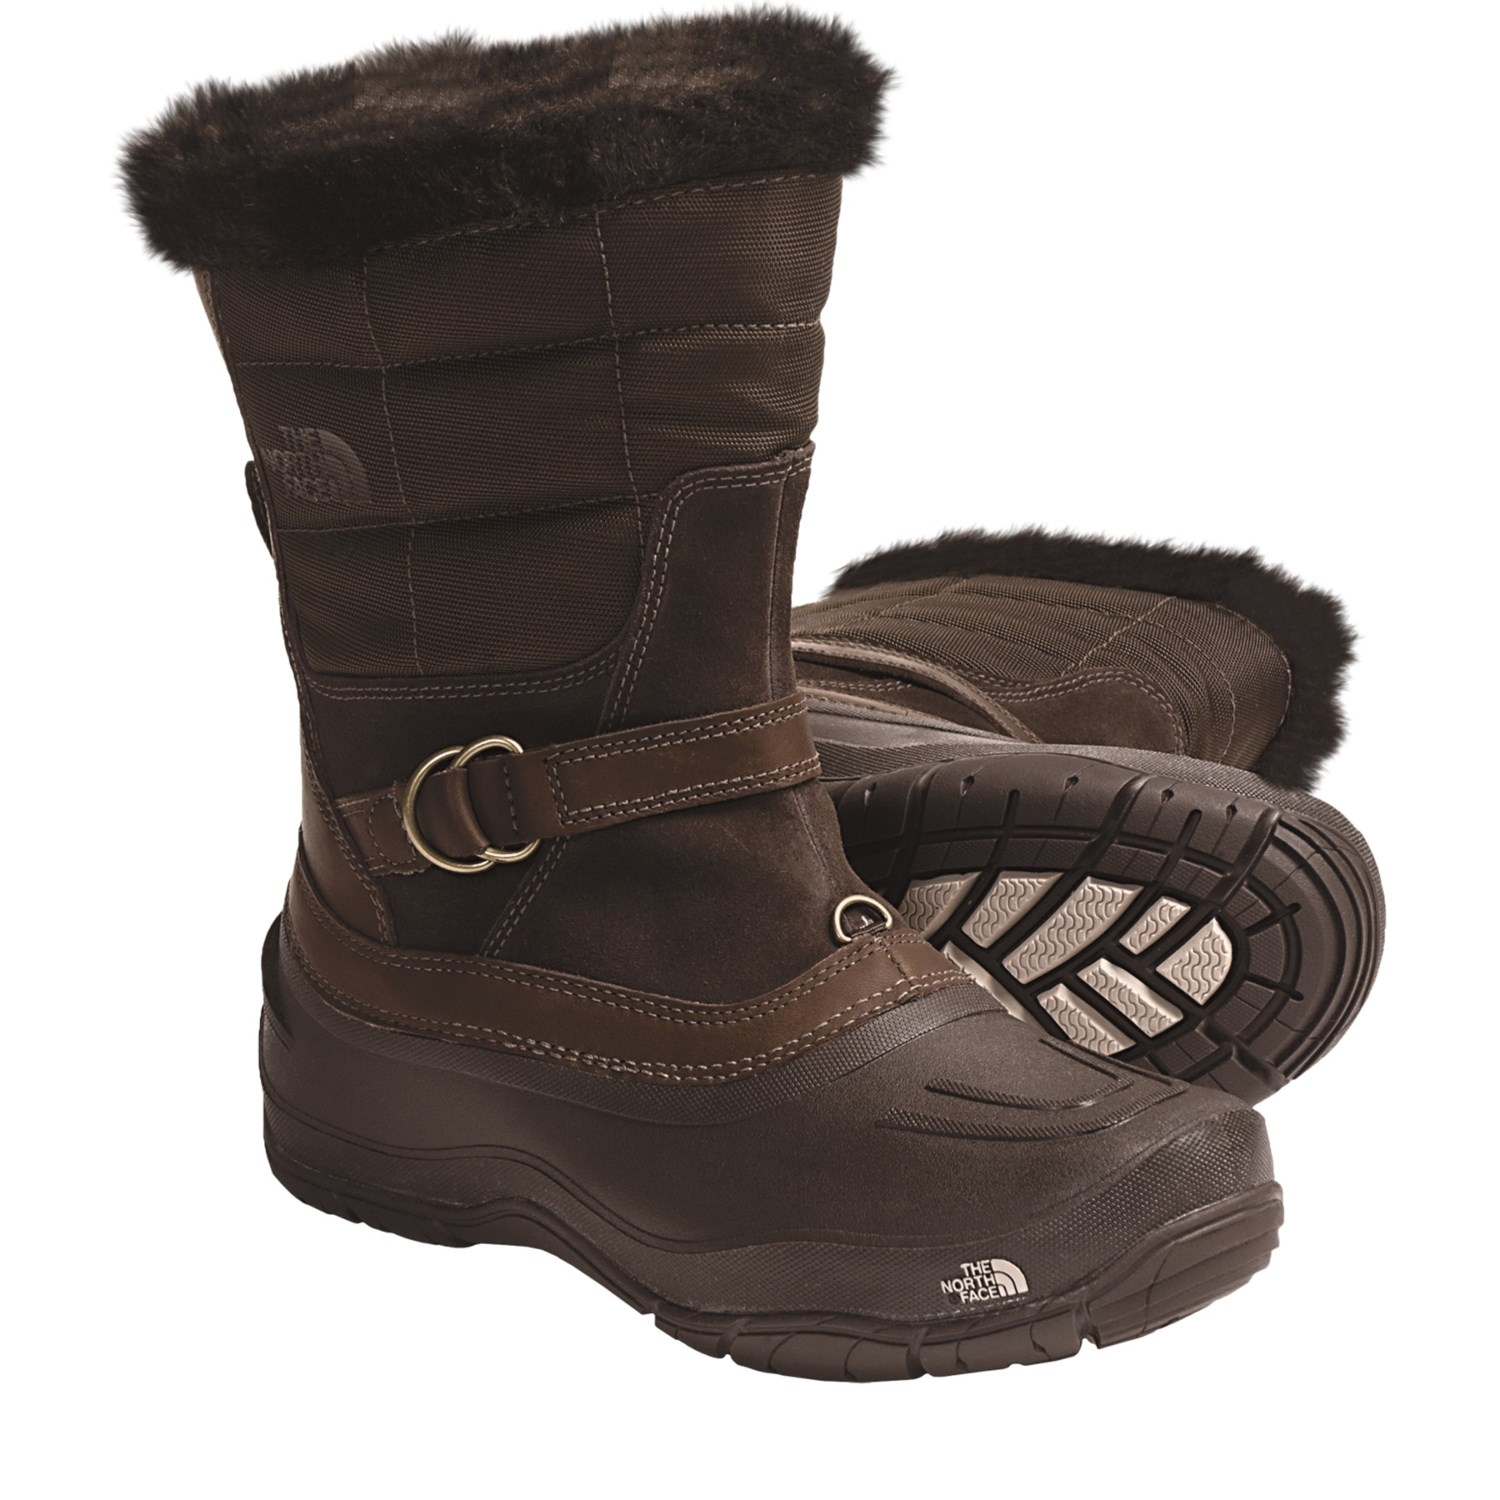 Winter Boots Clearance